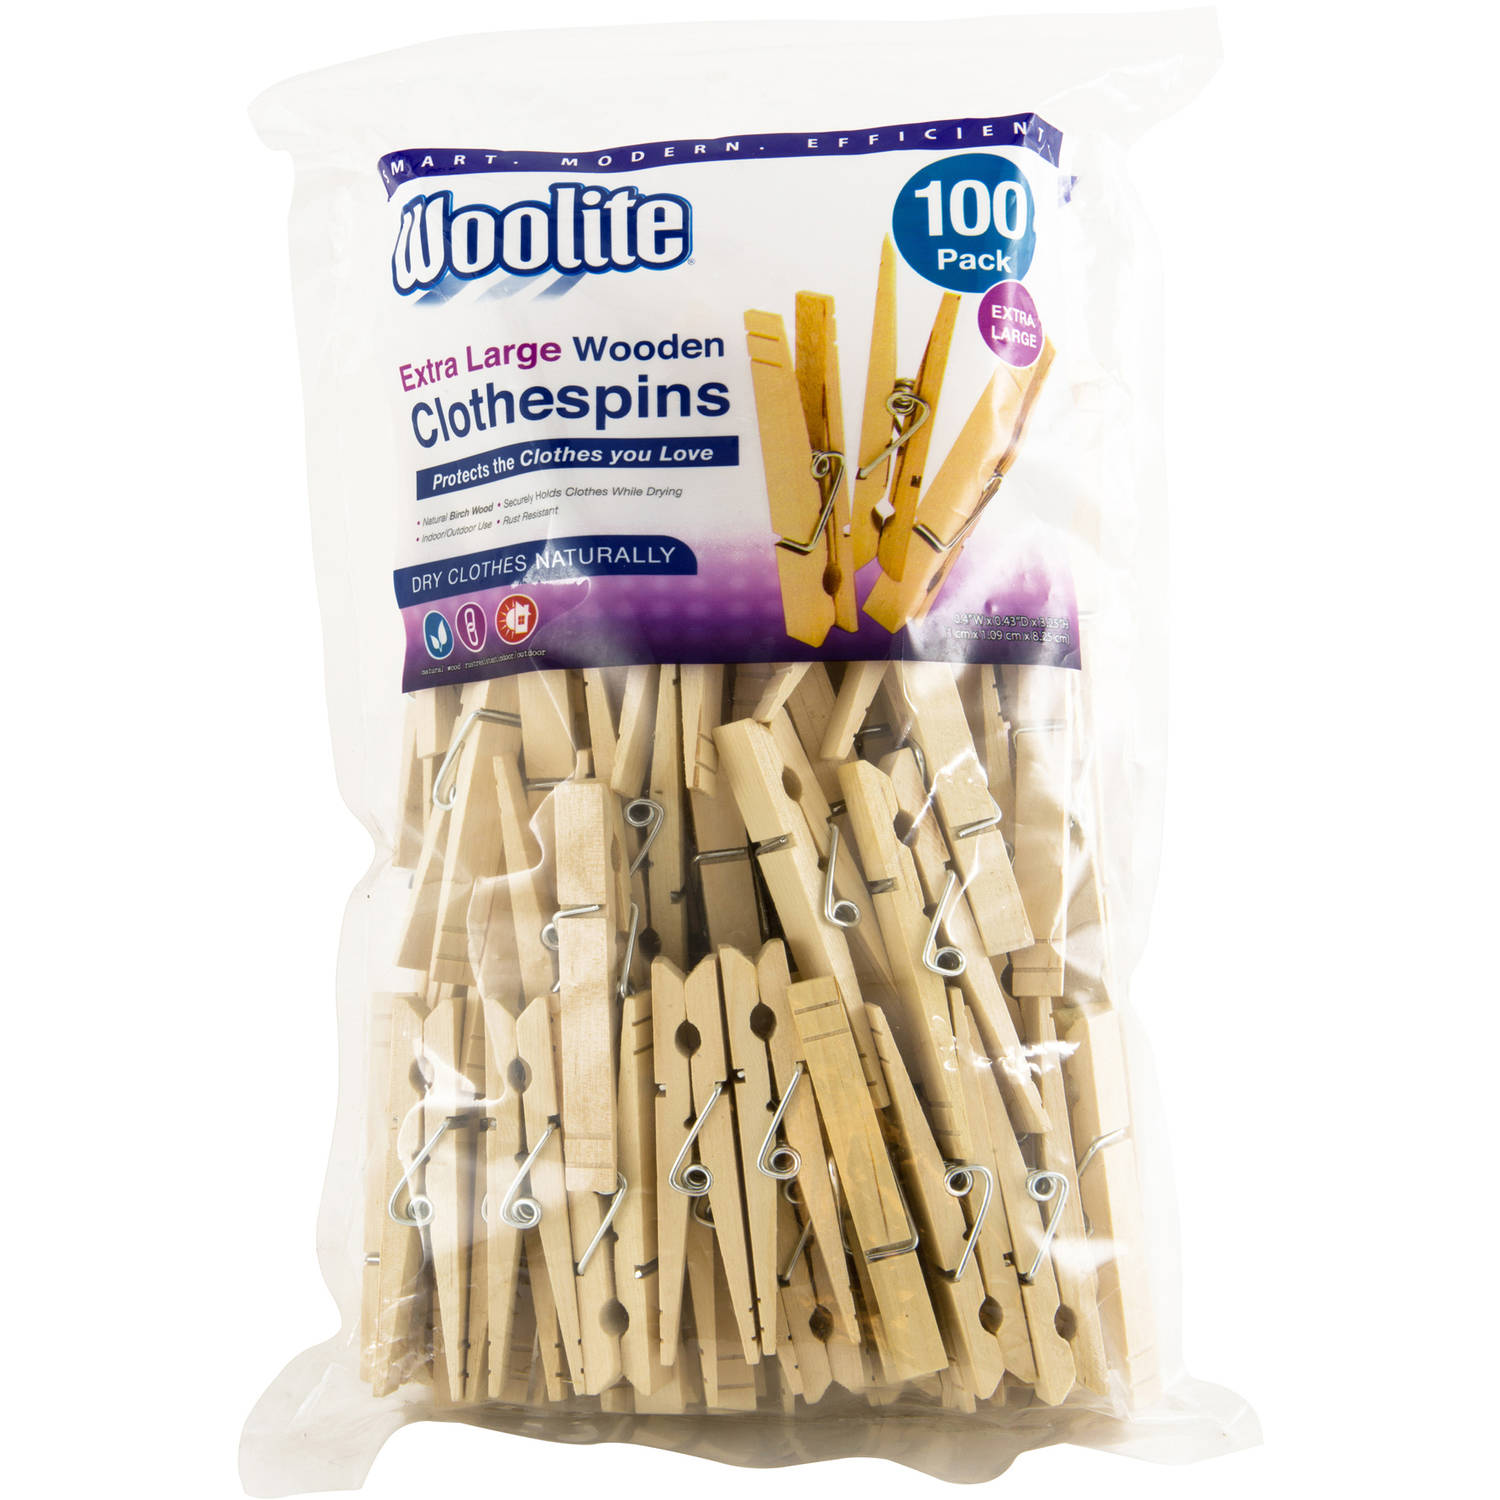 Woolite Extra Large Wooden 100-Pack Clothespins